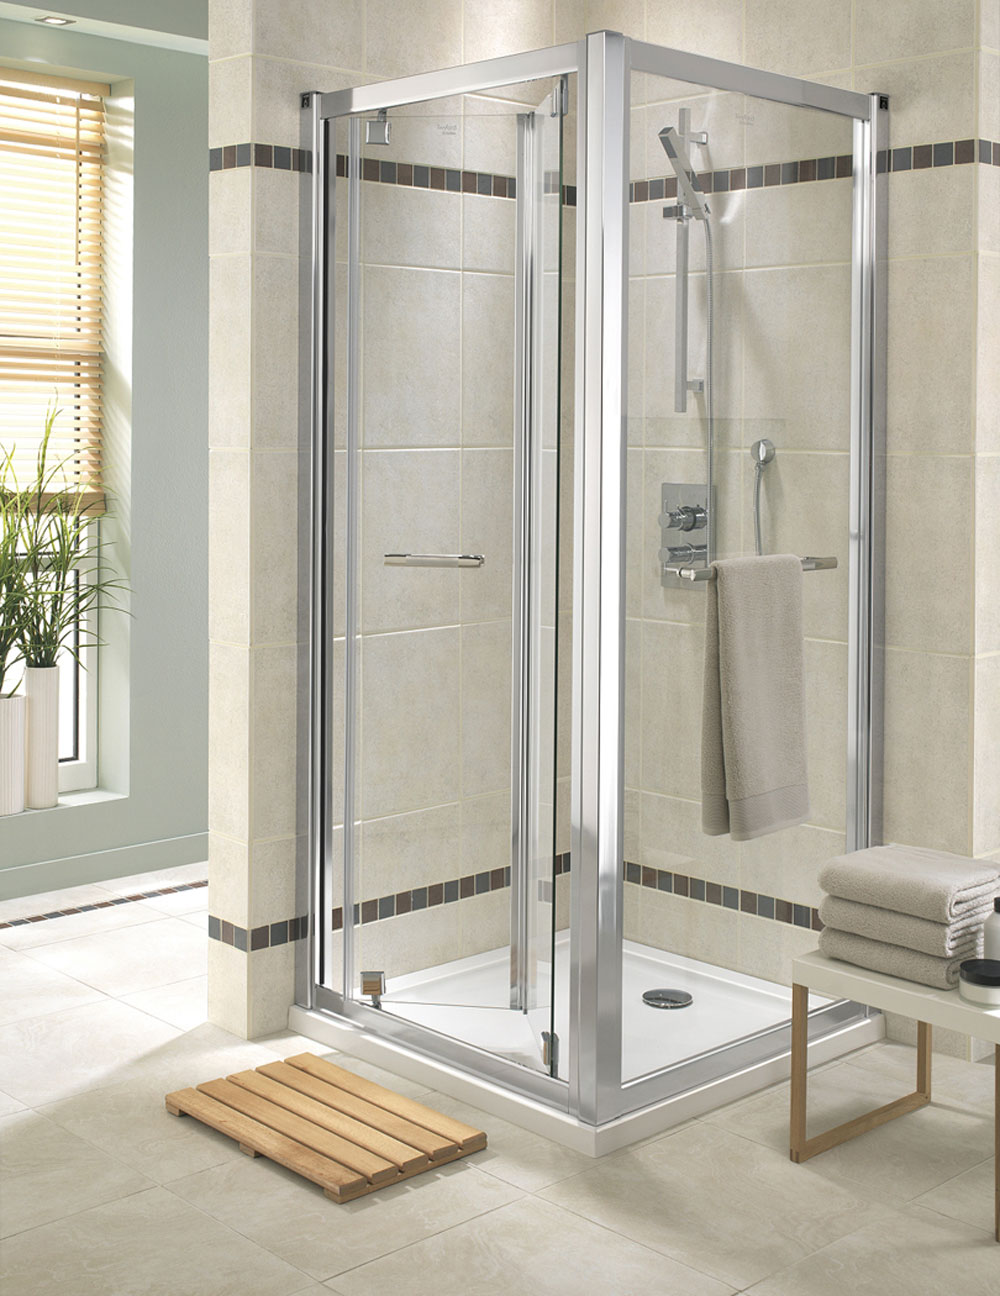 frameless glass shower door hinge adjustment featured top glass shower doors frameless bathroom decorating ideas on a budget